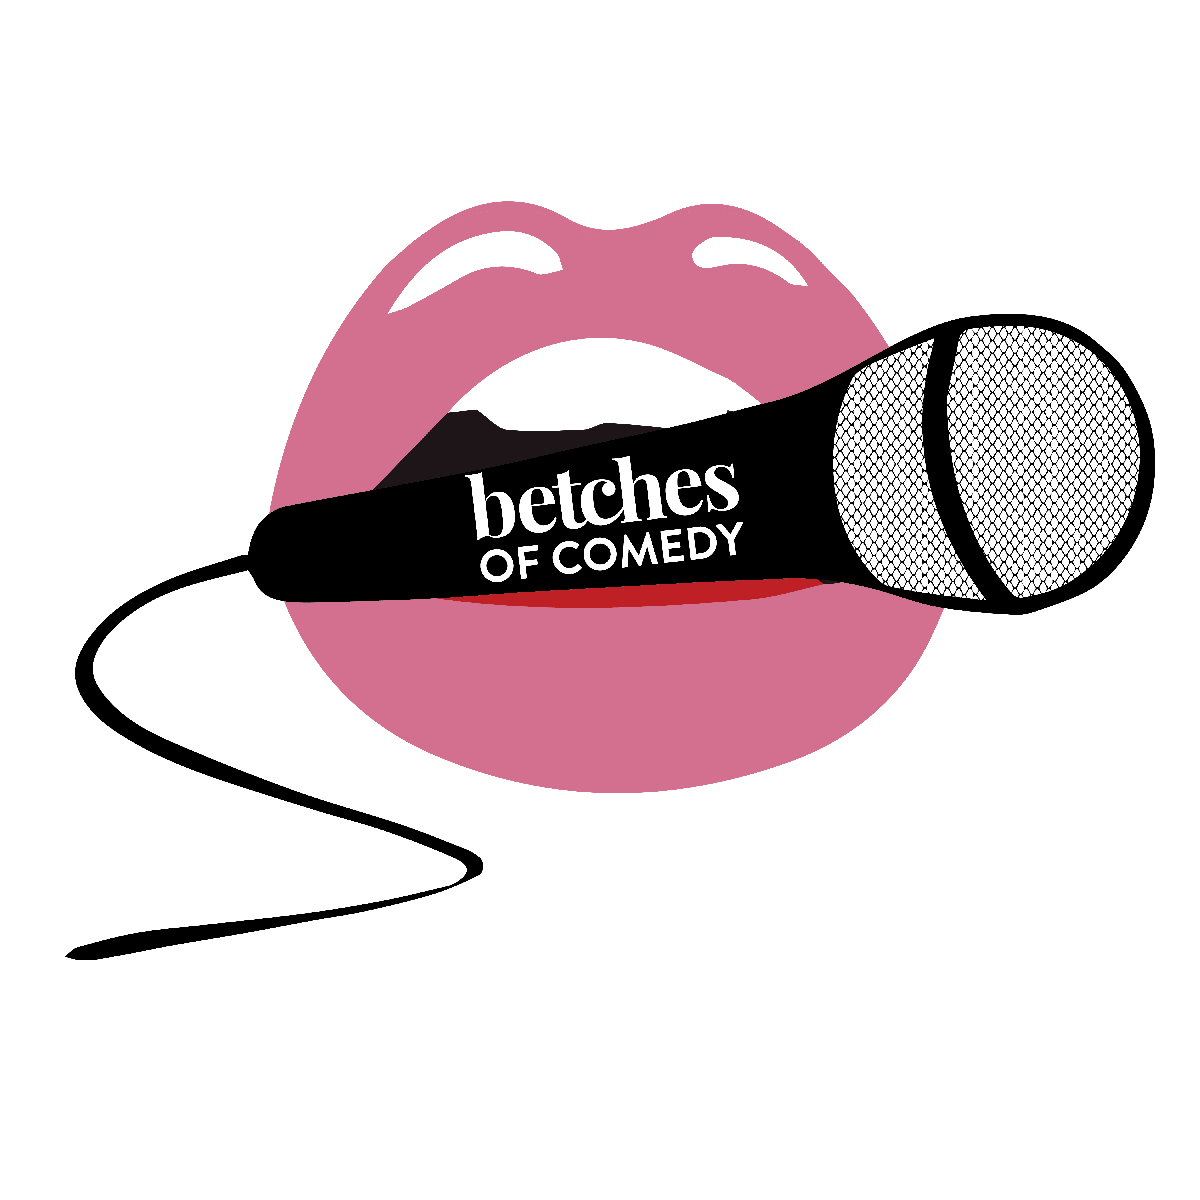 Gotham comedy betches sold. Club clipart lady brunch